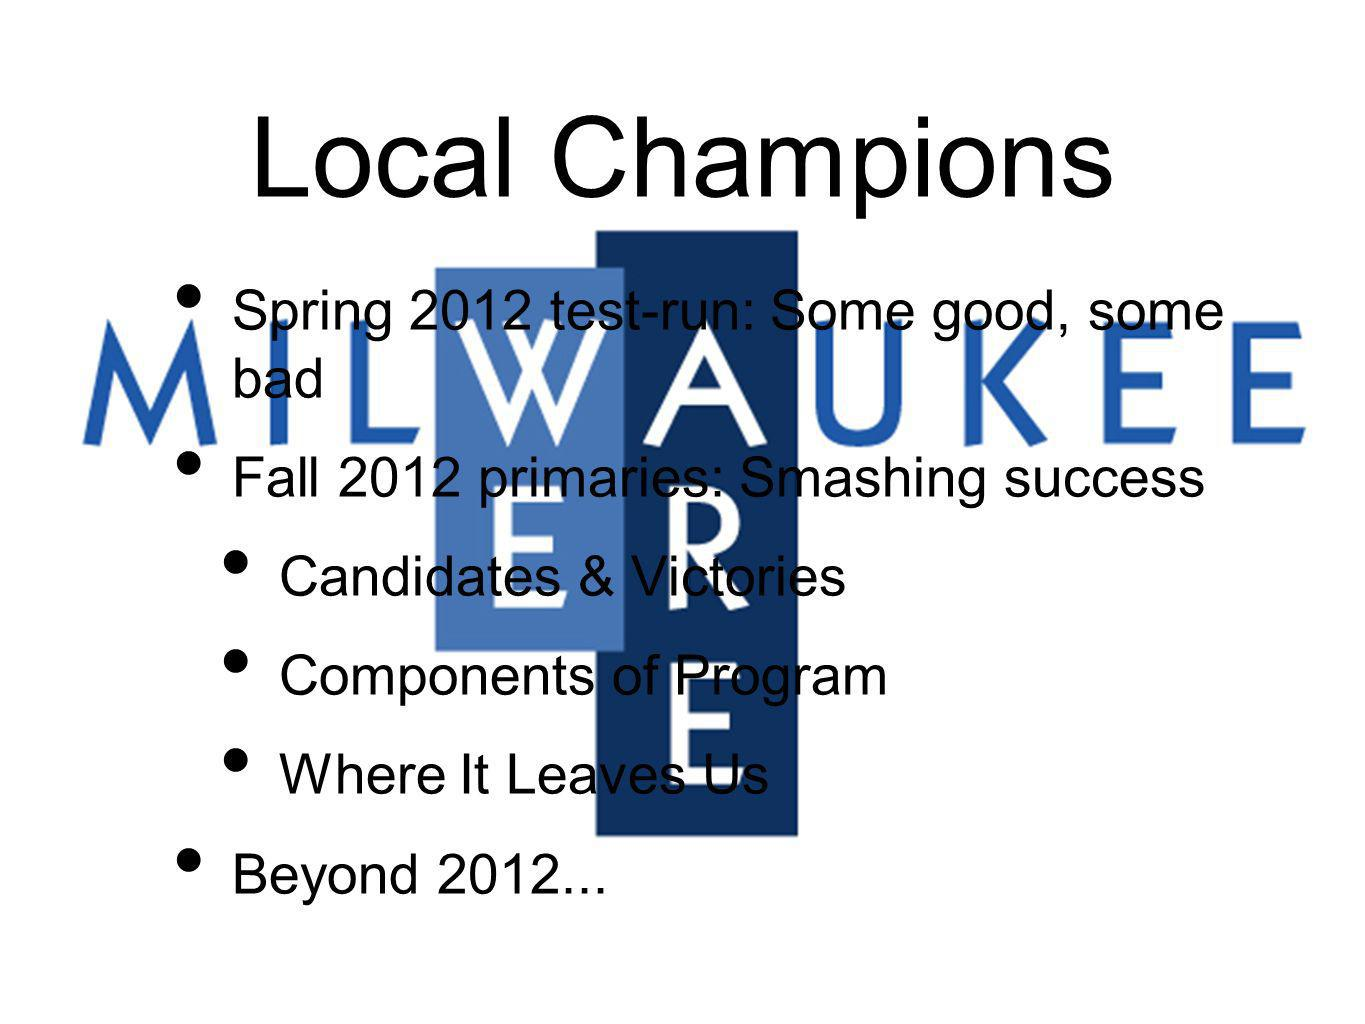 Local Champions Spring 2012 test-run: Some good, some bad Fall 2012 primaries: Smashing success Candidates & Victories Components of Program Where It Leaves Us Beyond